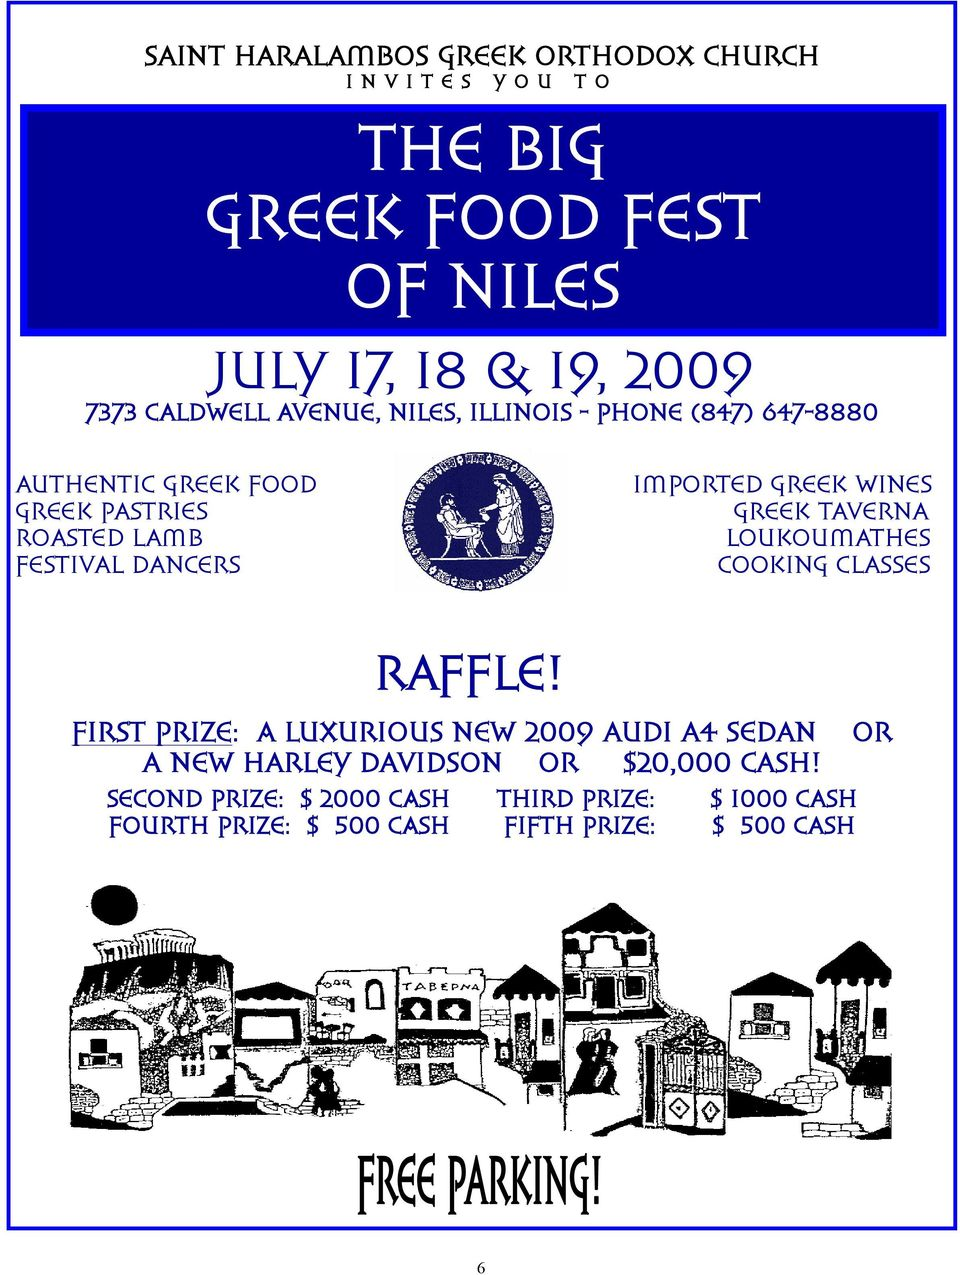 GREEK WINES GREEK TAVERNA LOUKOUMATHES COOKING CLASSES RAFFLE!